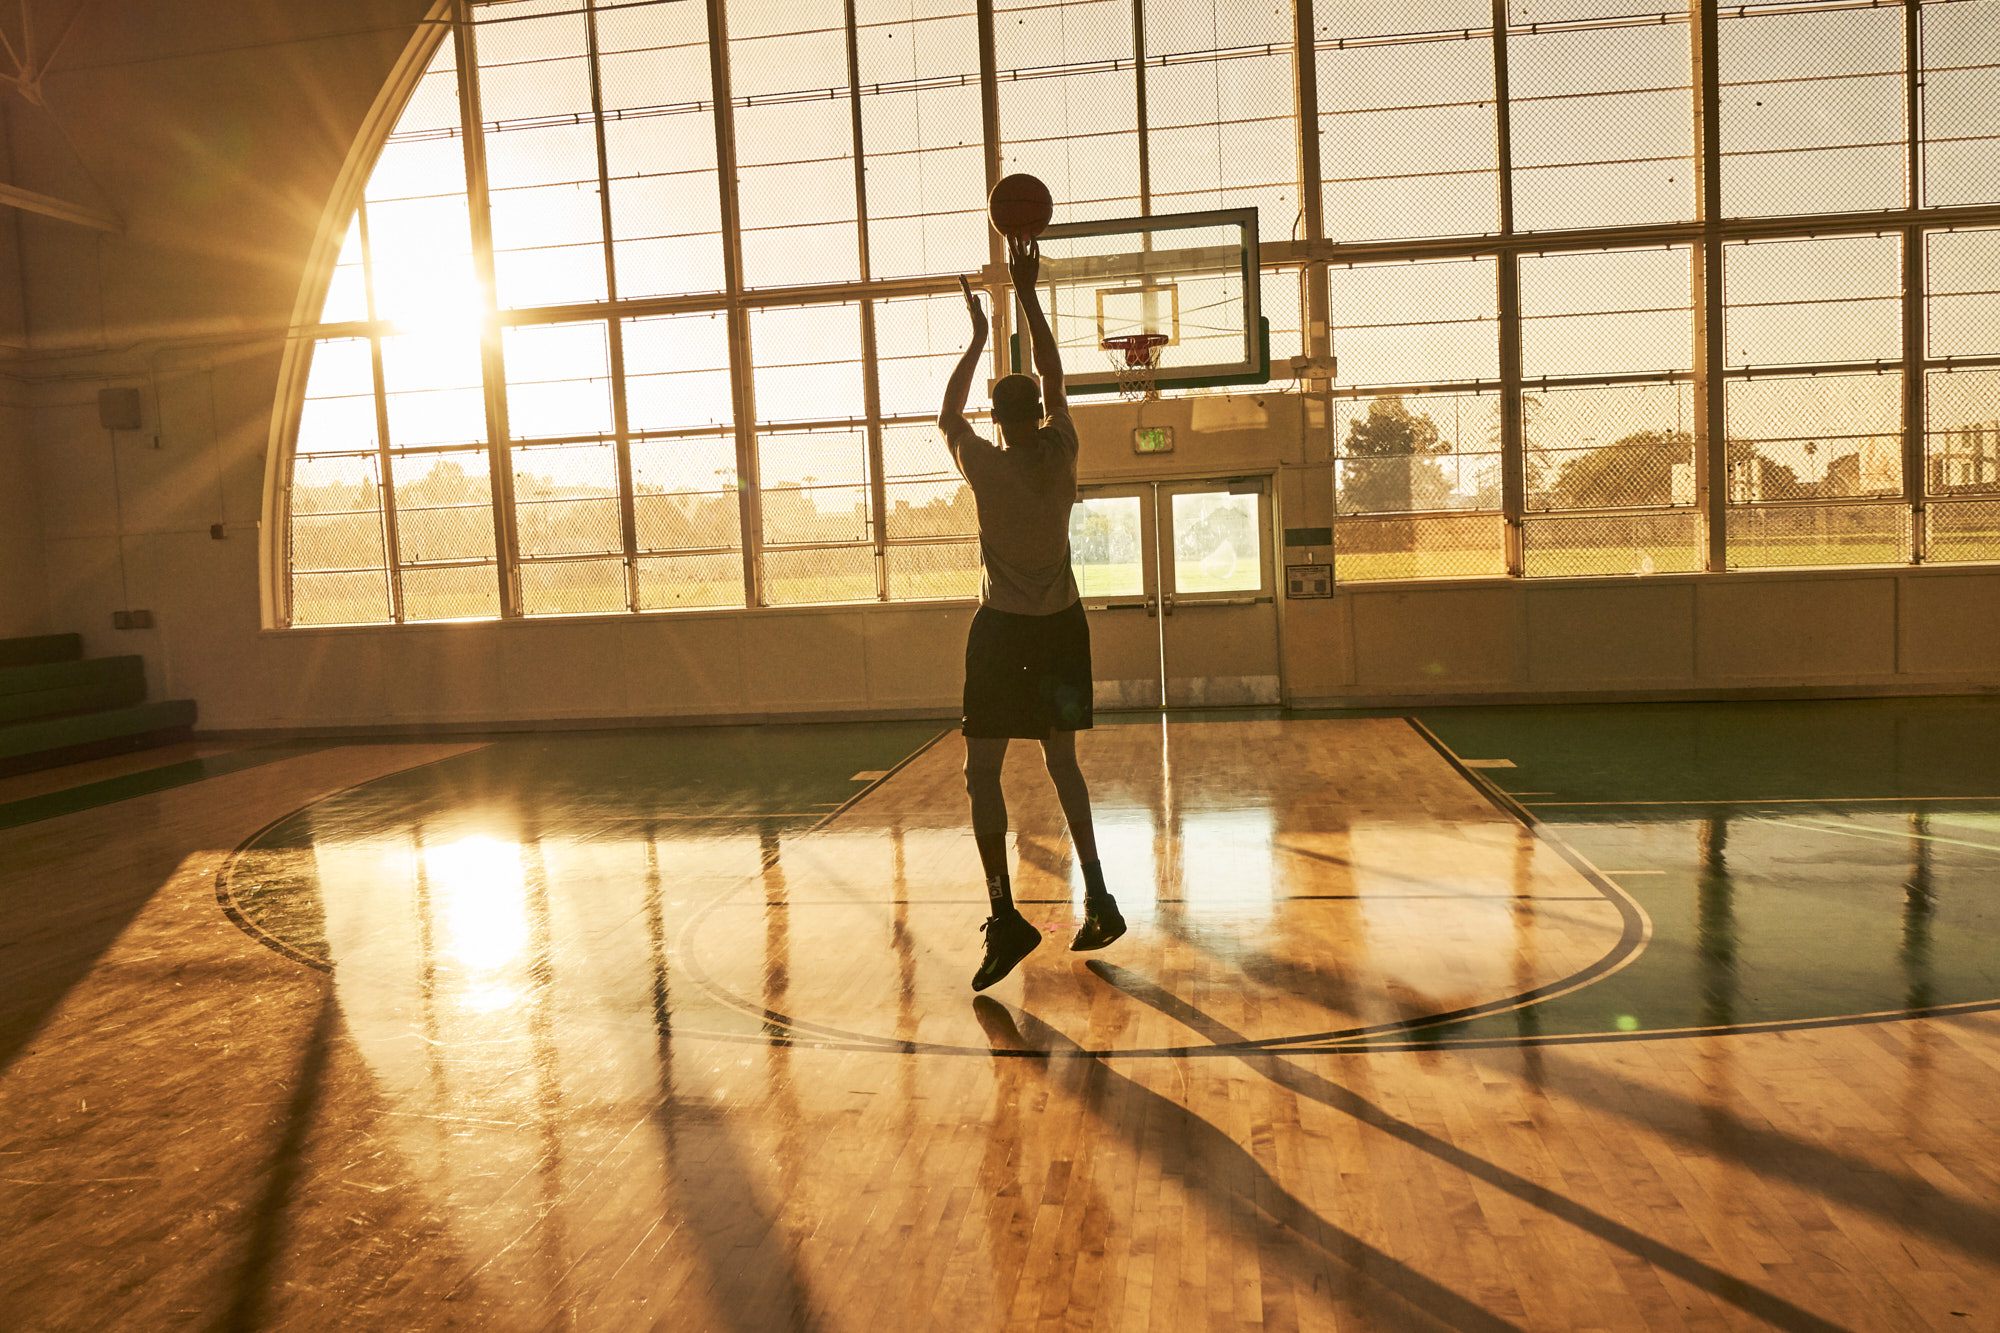 Commercial advertising photoshoot with celebrity athlete Kevin Durant for a national campaign.